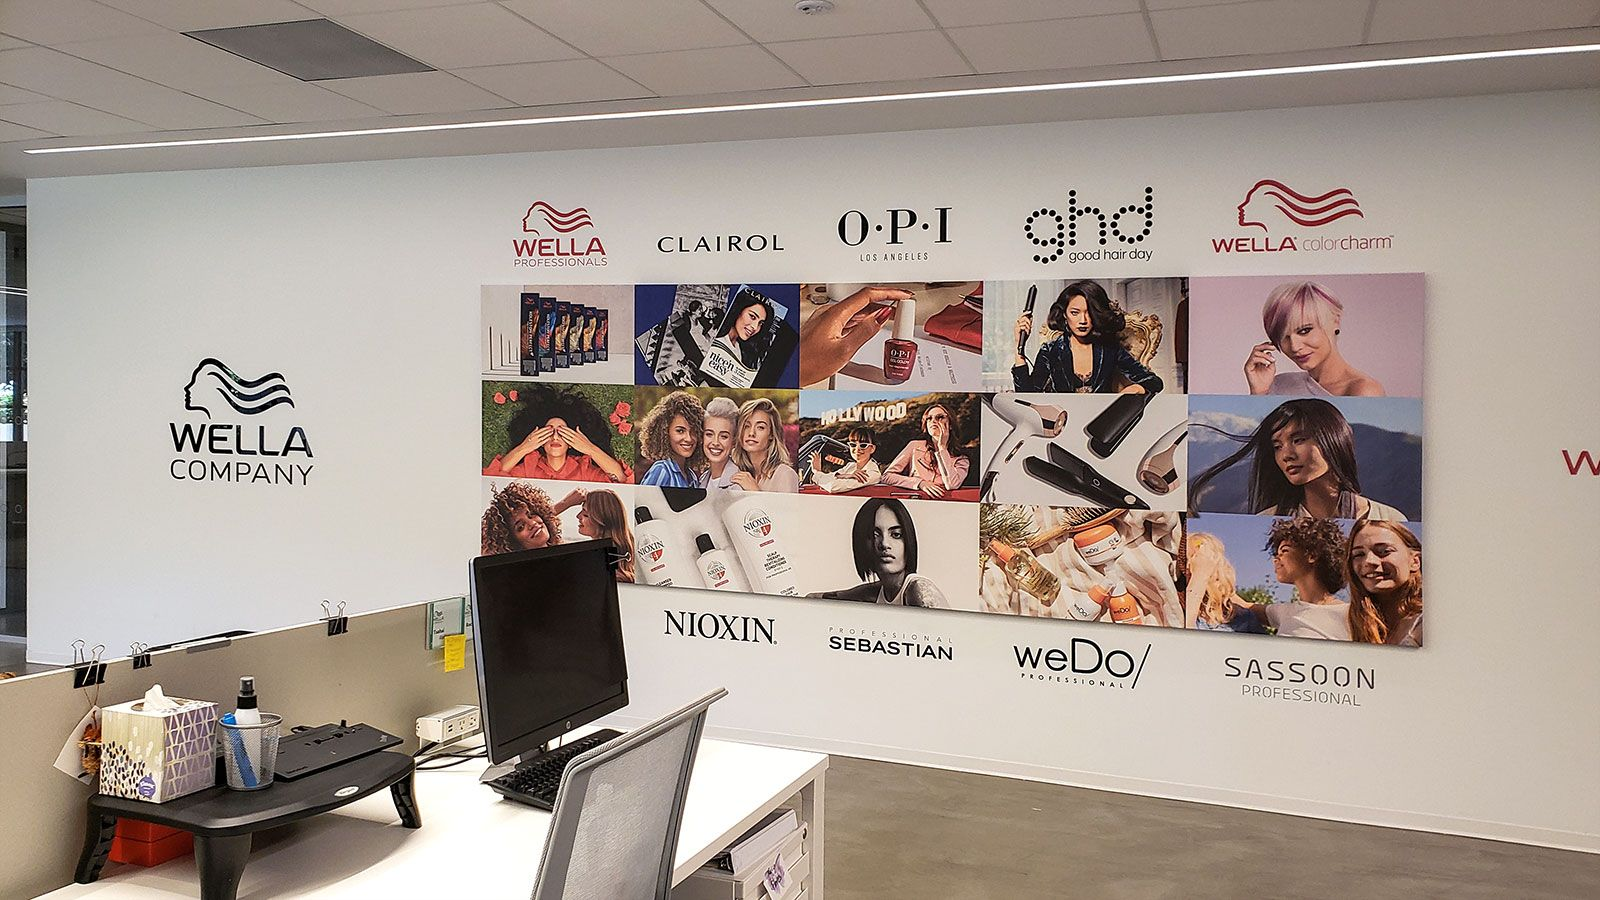 wella office signs